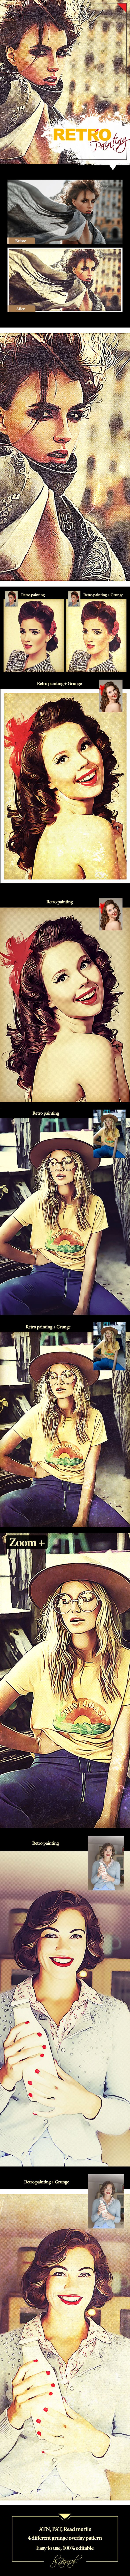 Retro Painting PS Action Vol2 - Photo Effects Actions